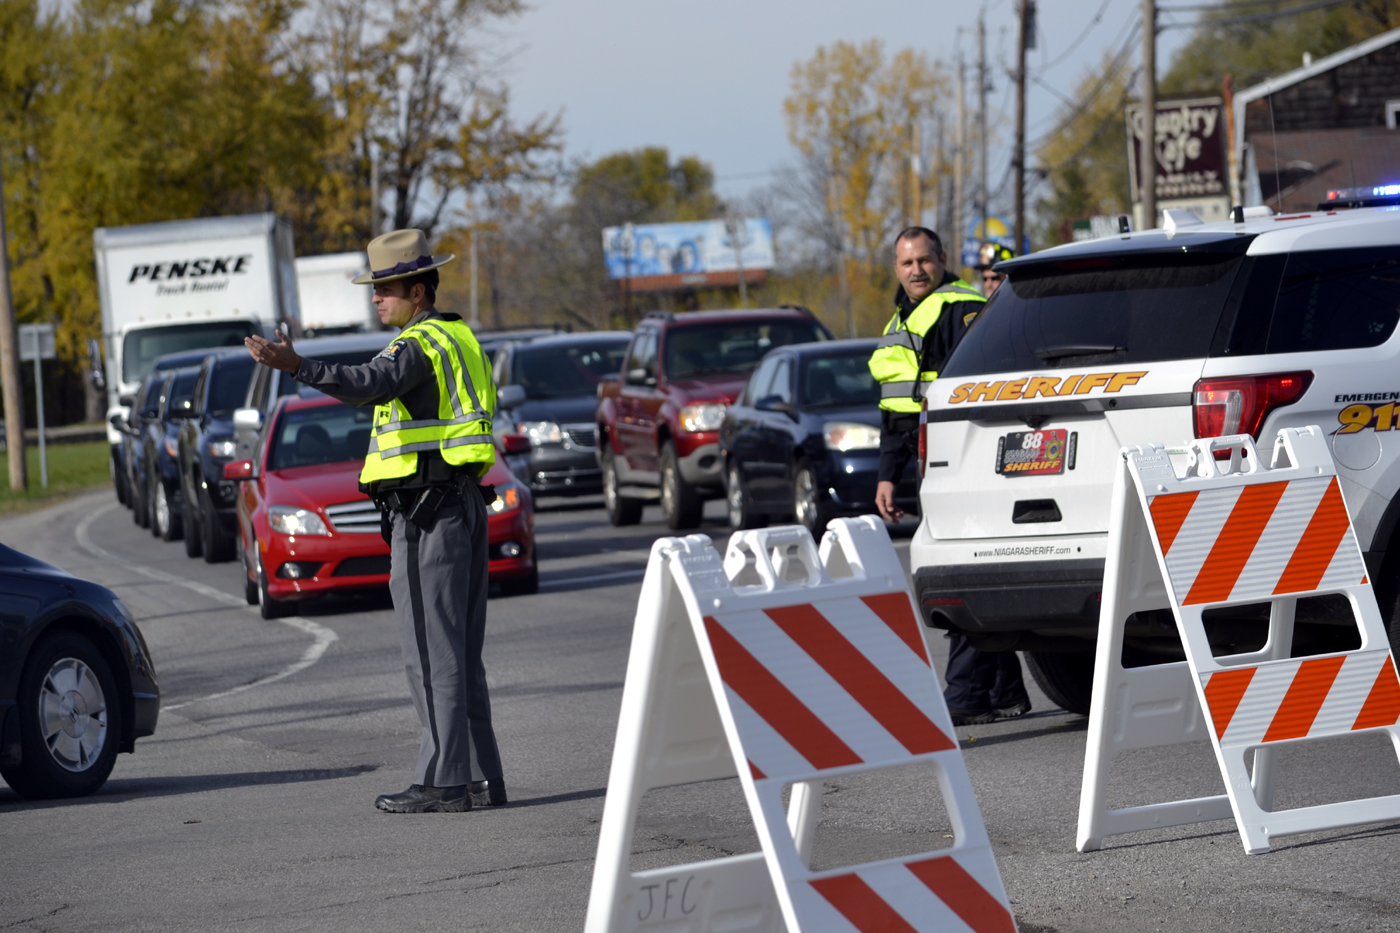 Police diverted traffic away from the 2900 block of Niagara Falls Boulevard in Wheatfield on Monday, Oct. 31, 2016 while they surrounded a house where a man was inside with a gun.